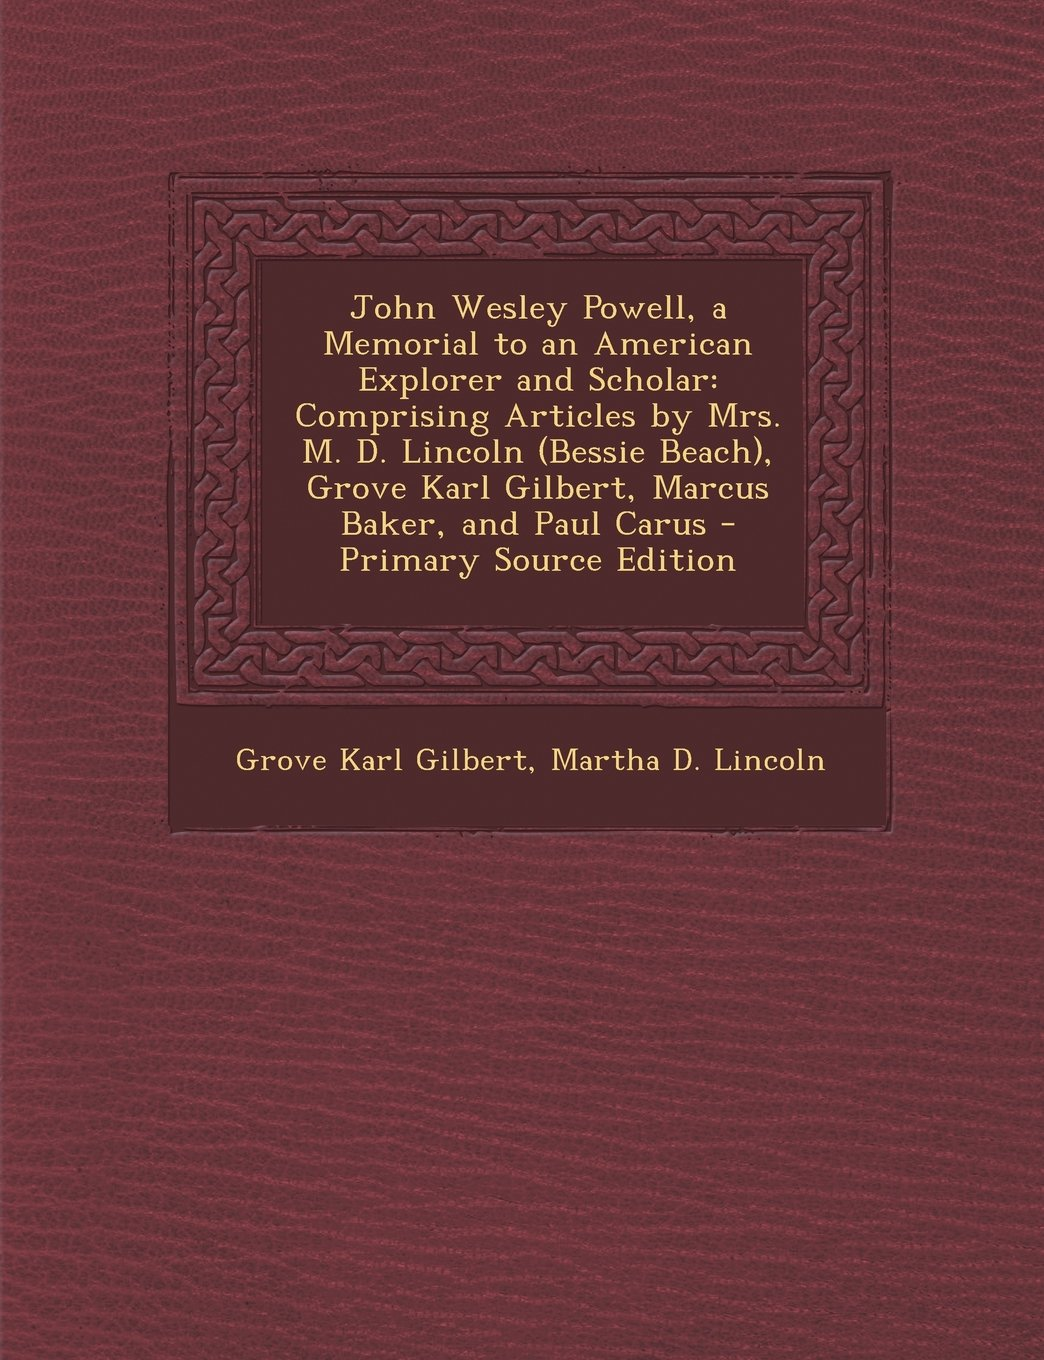 Download John Wesley Powell, a Memorial to an American Explorer and Scholar: Comprising Articles by Mrs. M. D. Lincoln (Bessie Beach), Grove Karl Gilbert, Marcus Baker, and Paul Carus - Primary Source Edition ebook